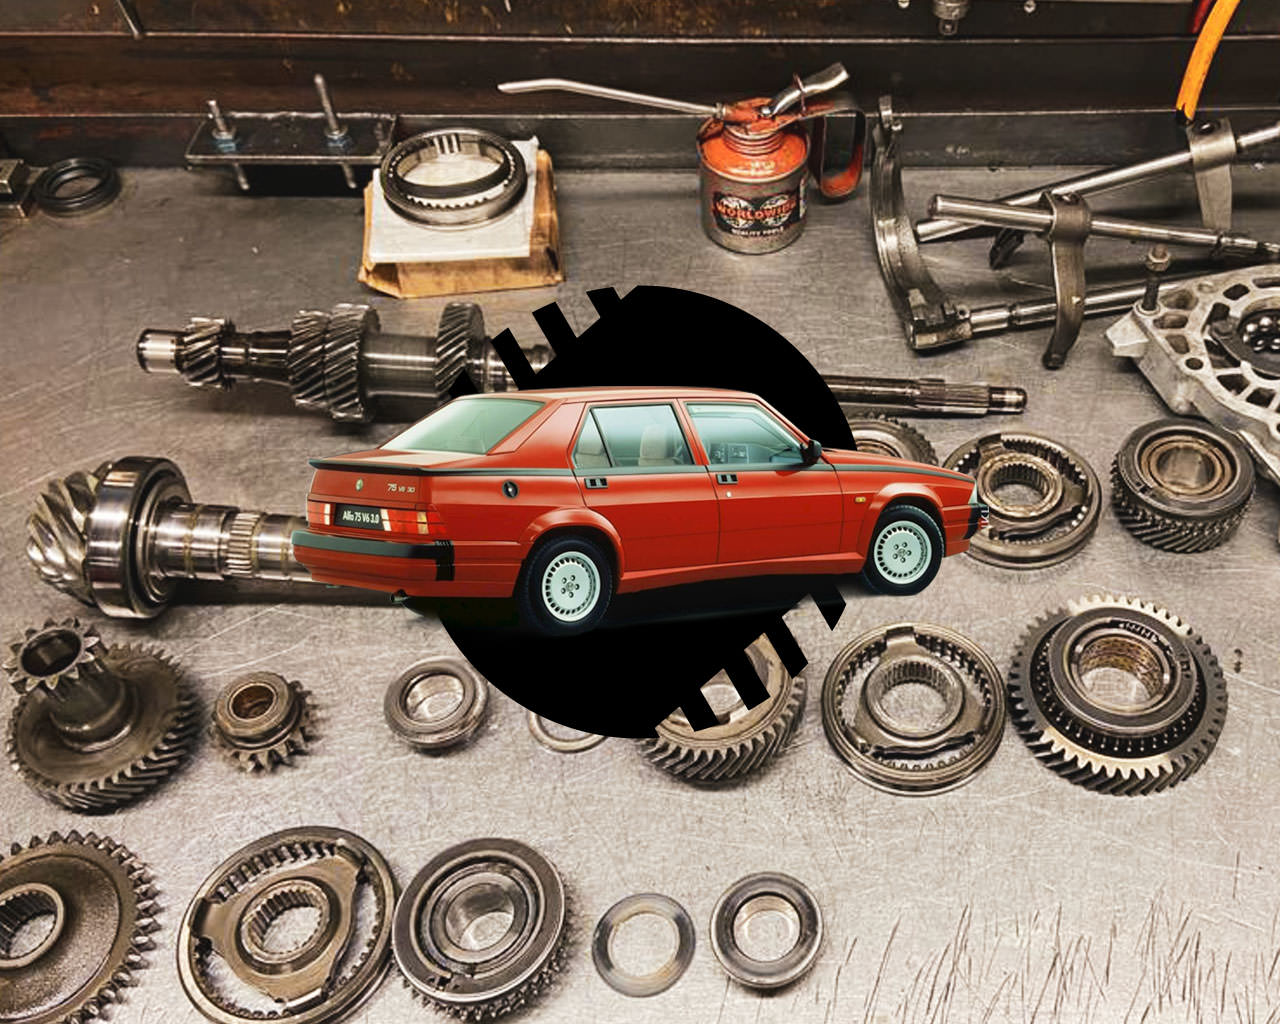 Geartech Midlands can diagnose and repair car gearbox failures